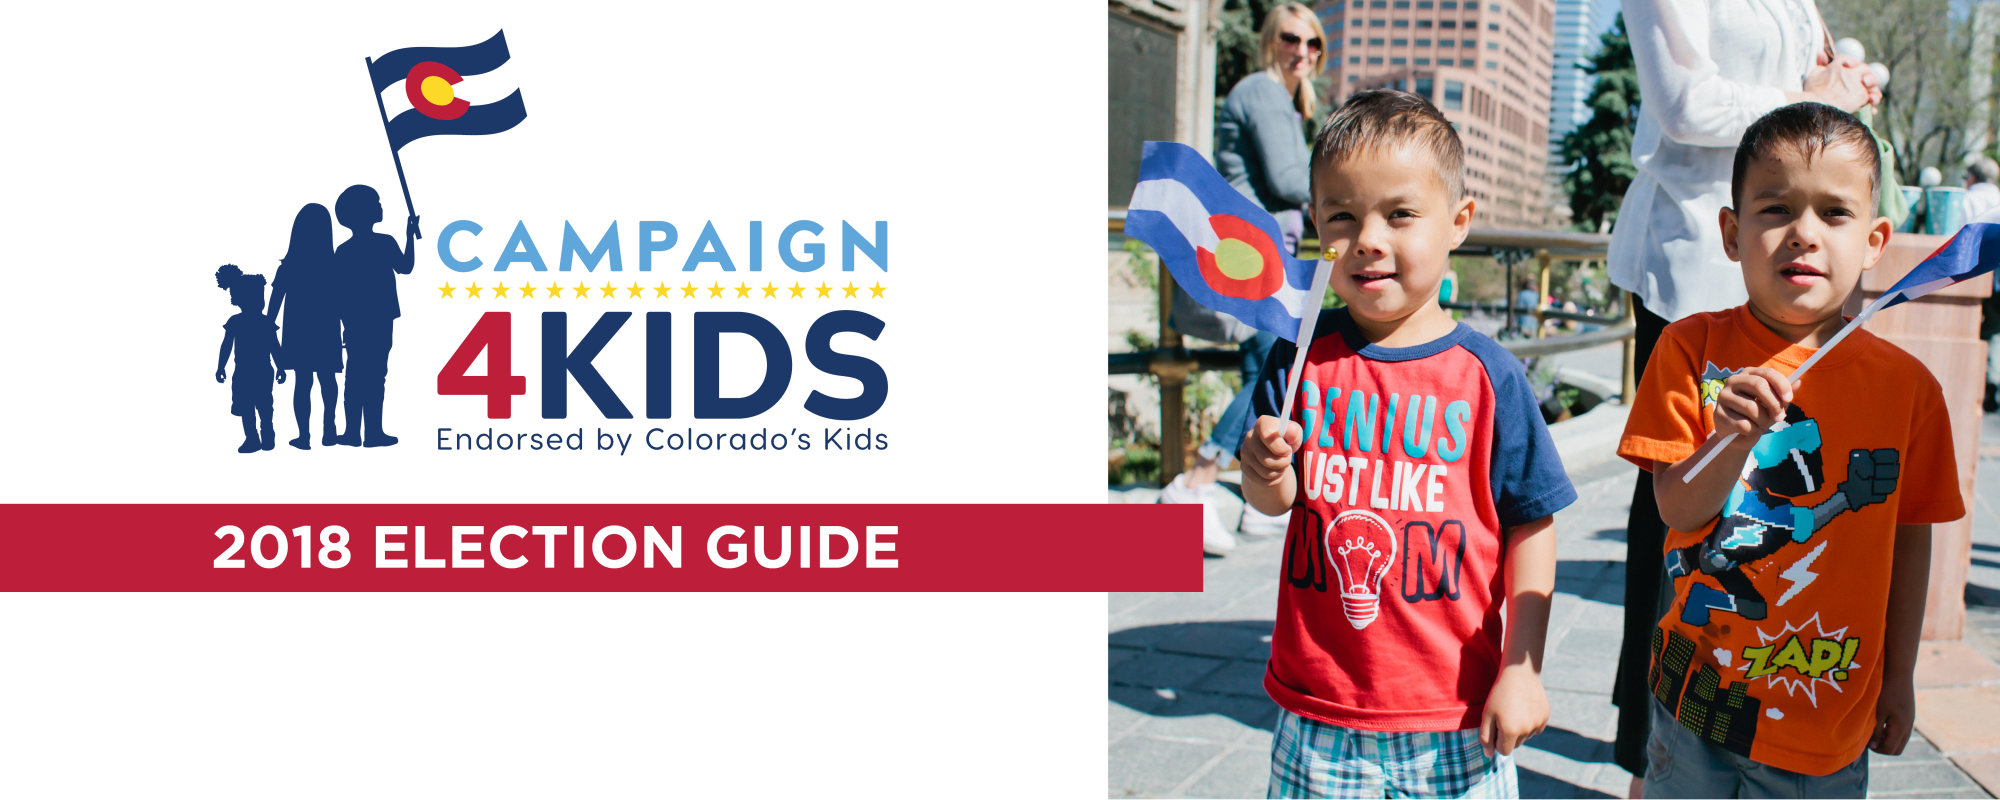 campaign for kids 2018